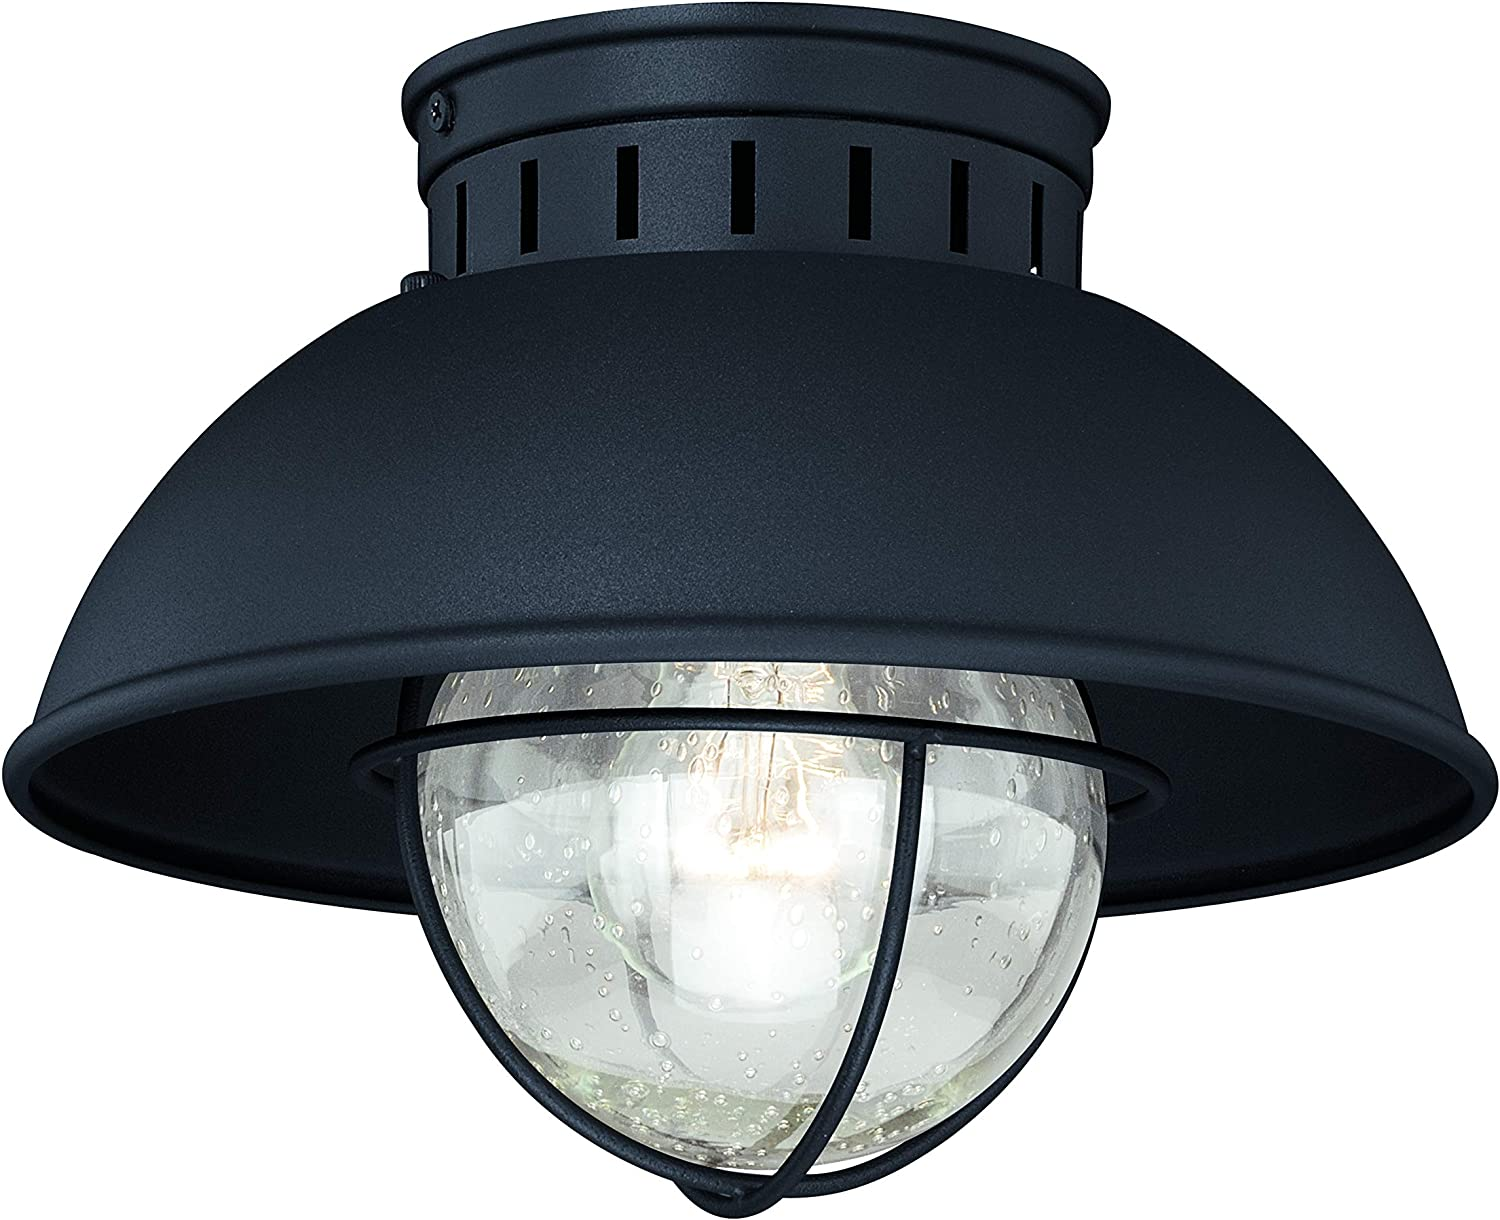 VAXCEL Indoor Outdoor Ceiling Light - Harwich Textured Black and Clear Seeded Glass Semi Flush Mount Light Fixture, Farmhouse, Coastal, Nautical Decor, Ideal for Carport, Front Porch, Patio, Entryway